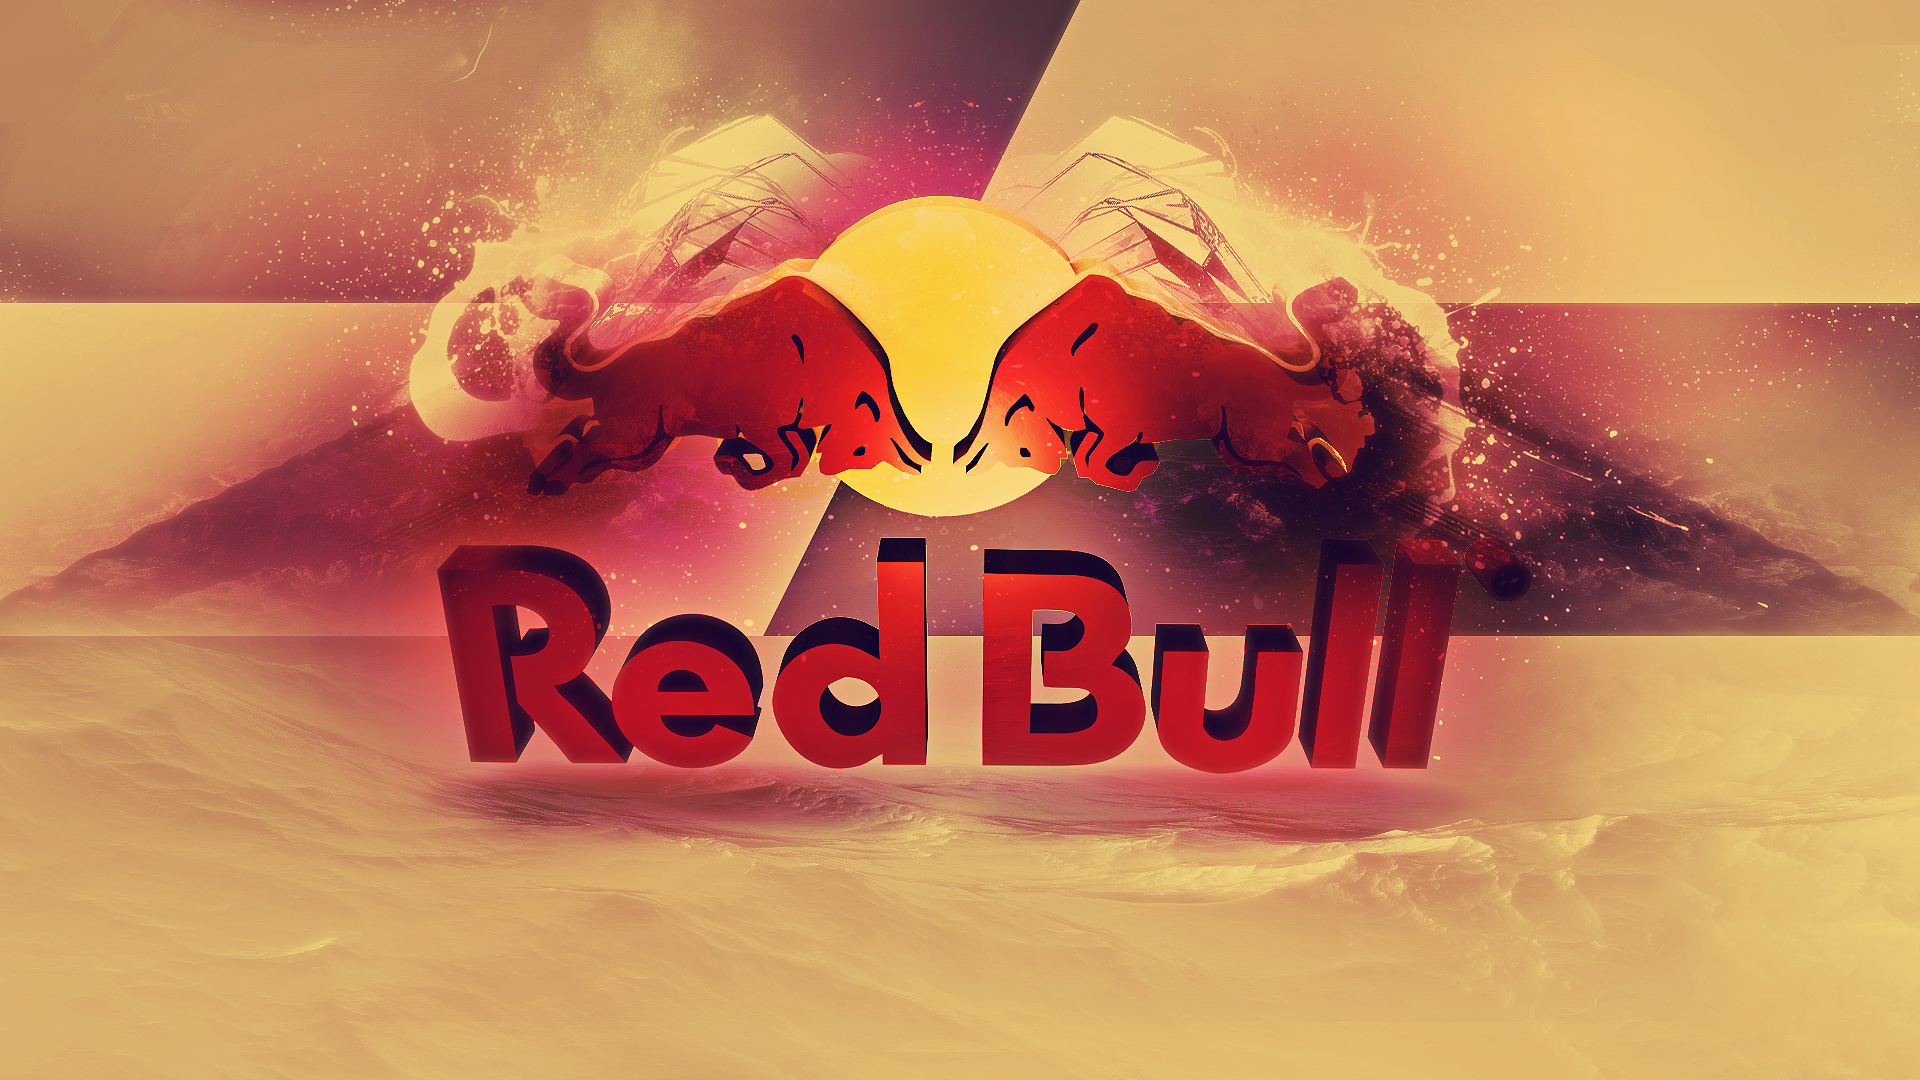 netfs70f201112141red bull wallpaper by chollo d3fcalzpng 1920x1080